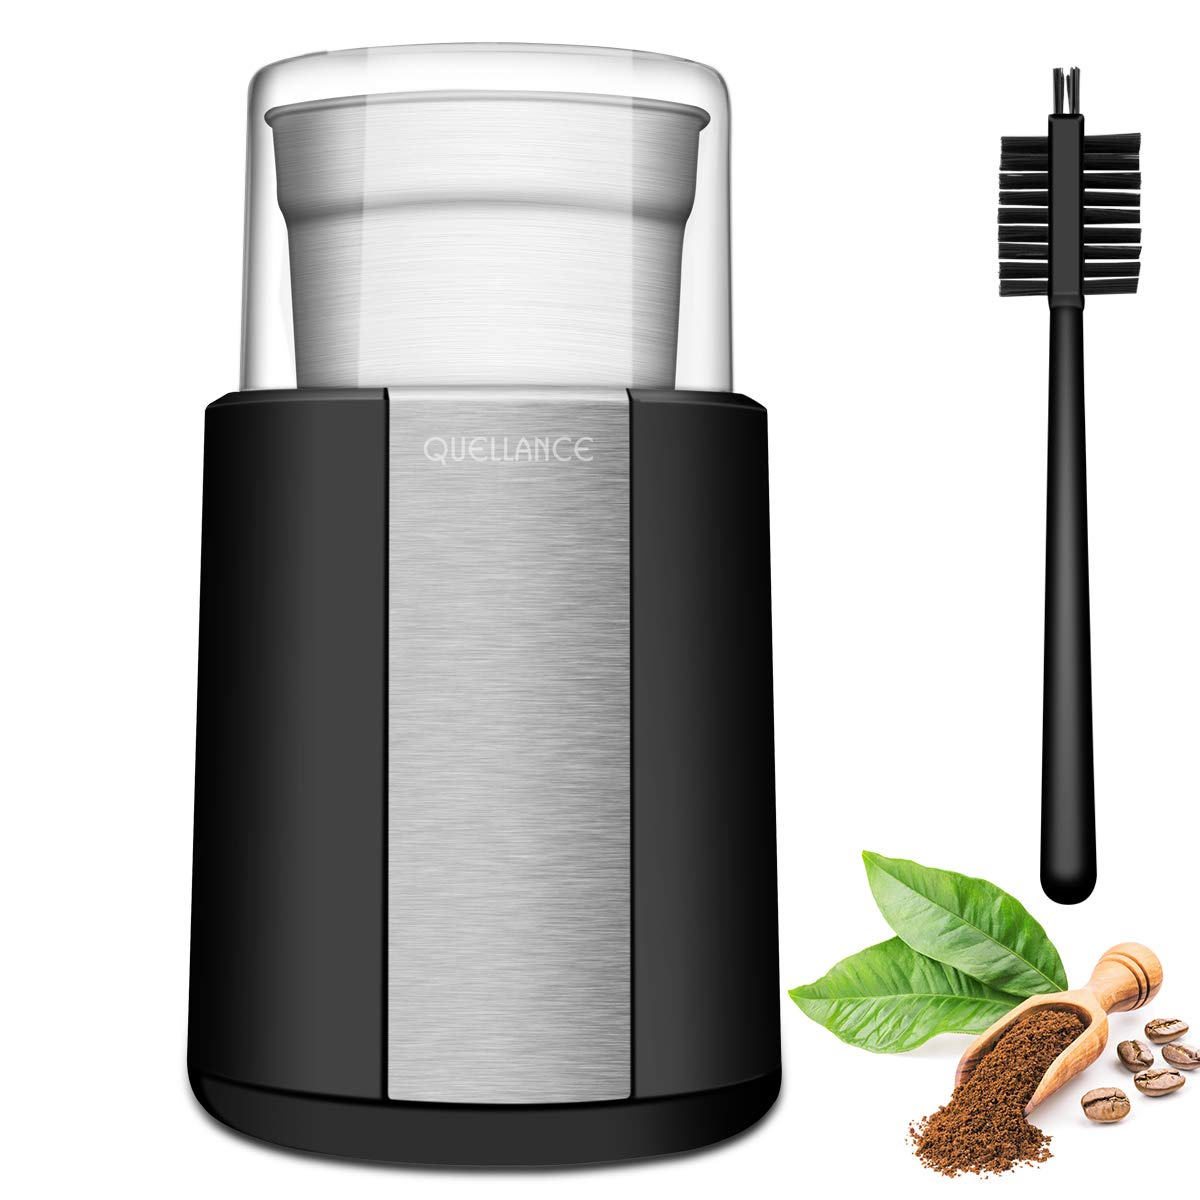 Electric Coffee Grinder for coffee & spices – 50% off! $15.99 on Amazon